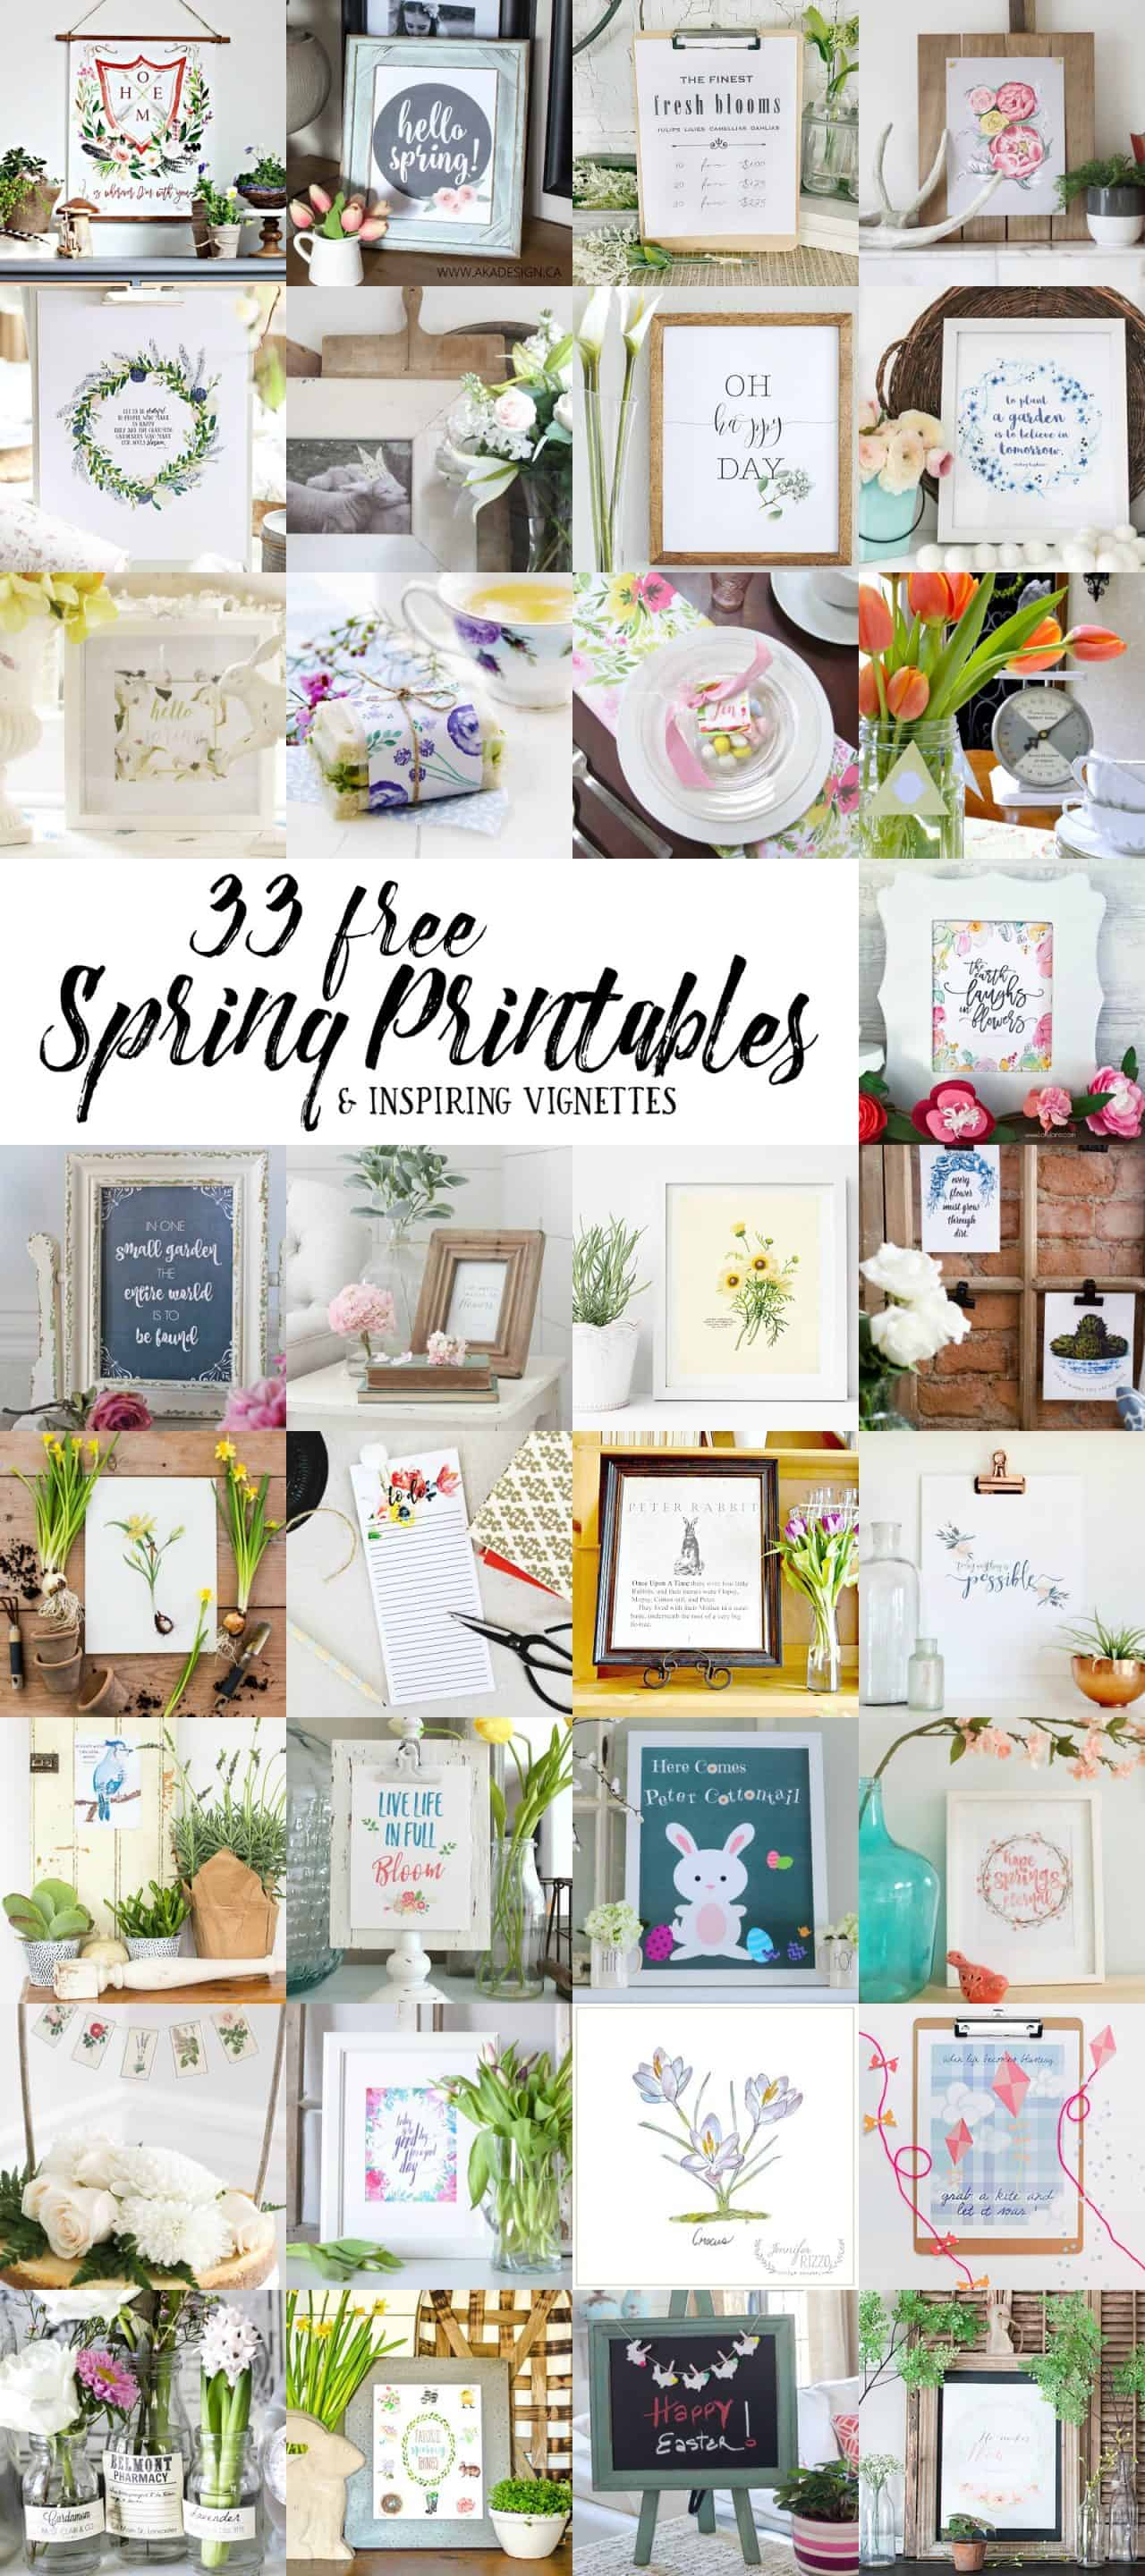 http://akadesign.ca/how-to-create-a-vignette-and-hello-spring-free-printable/